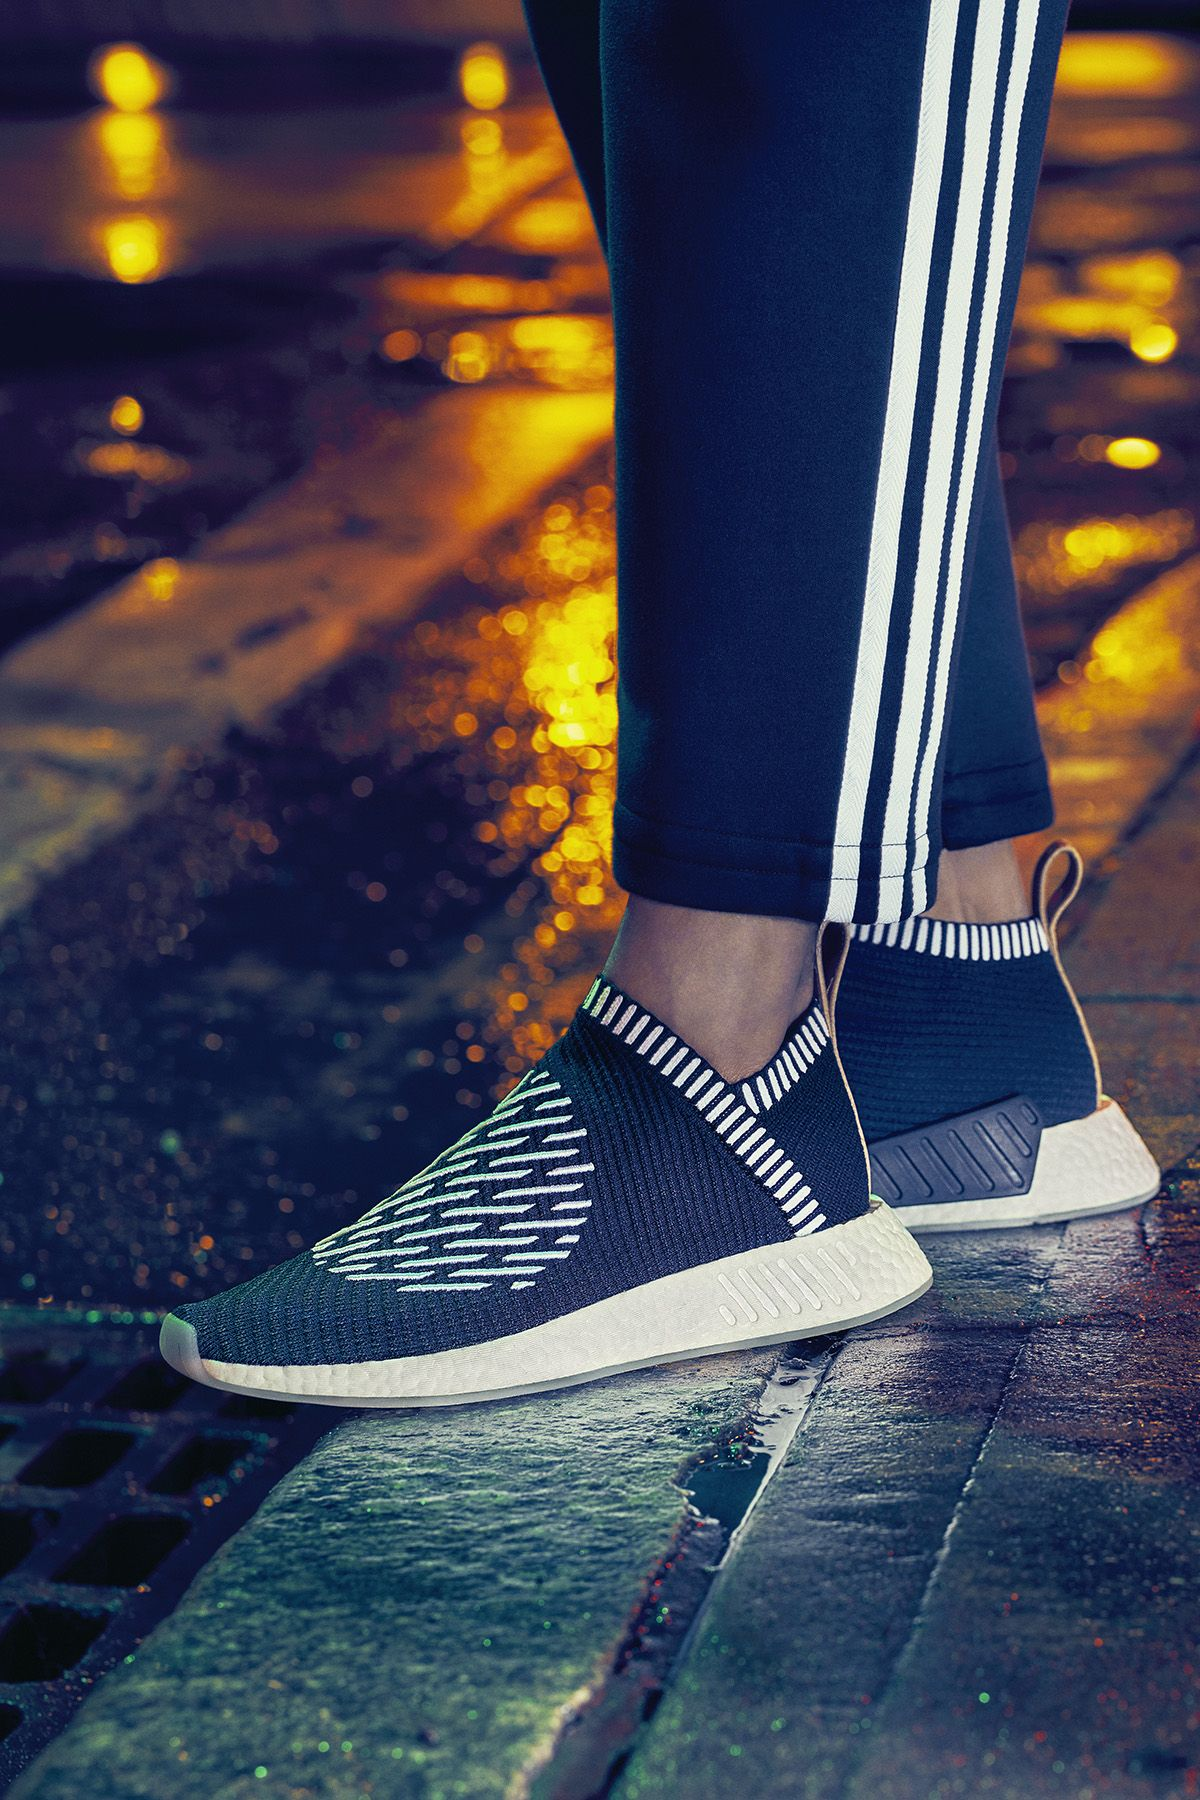 Adidas NMD CS2 Ronin Pack | Sole Collector